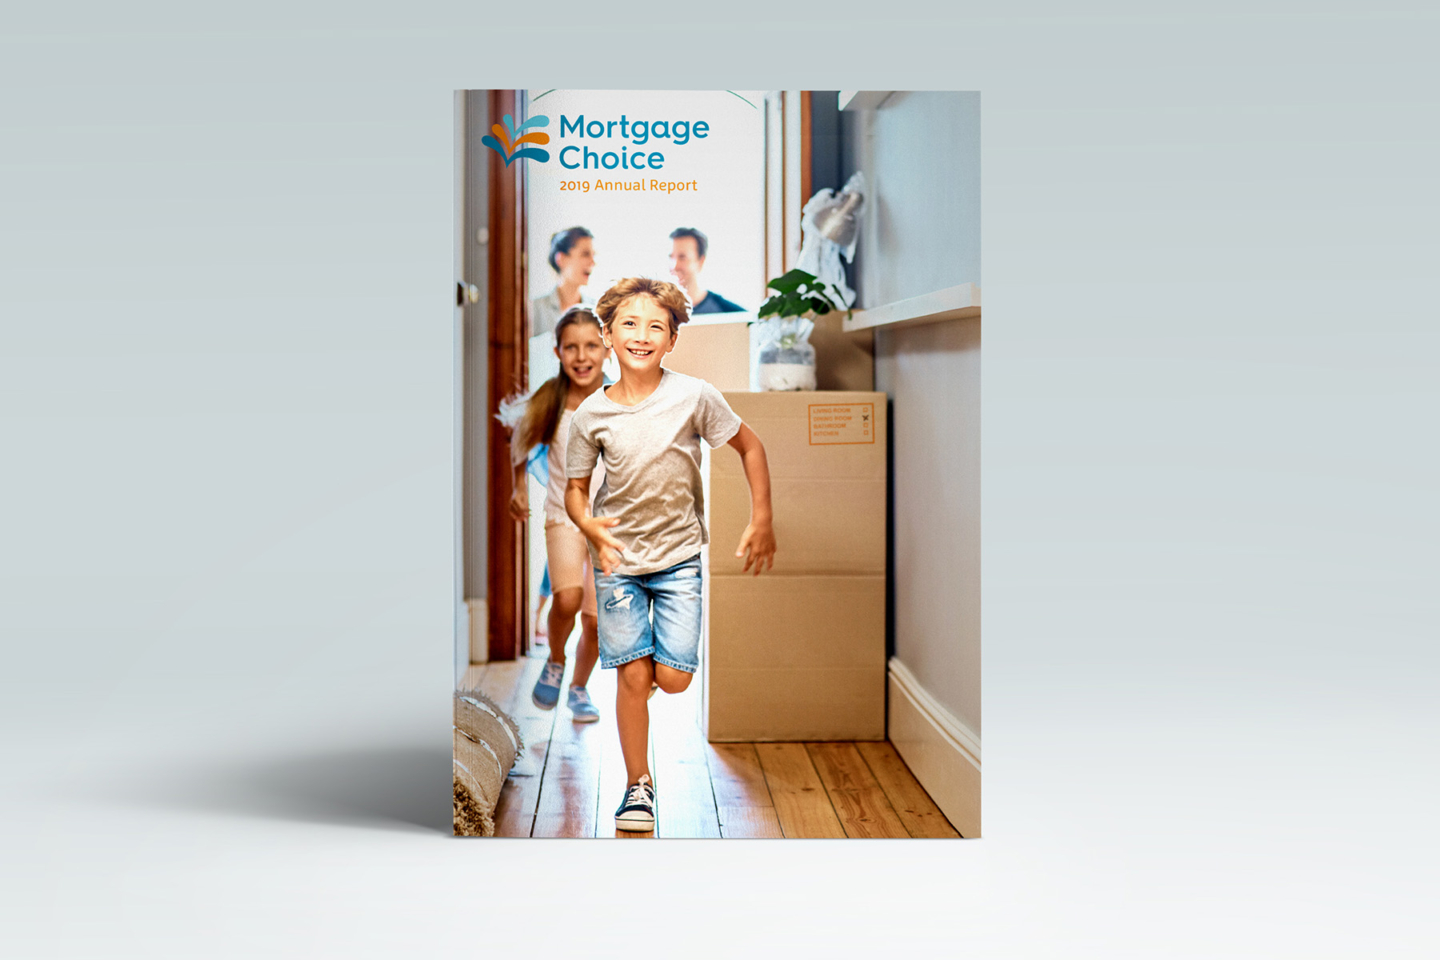 Mortgage Choice: Annual Report 2019